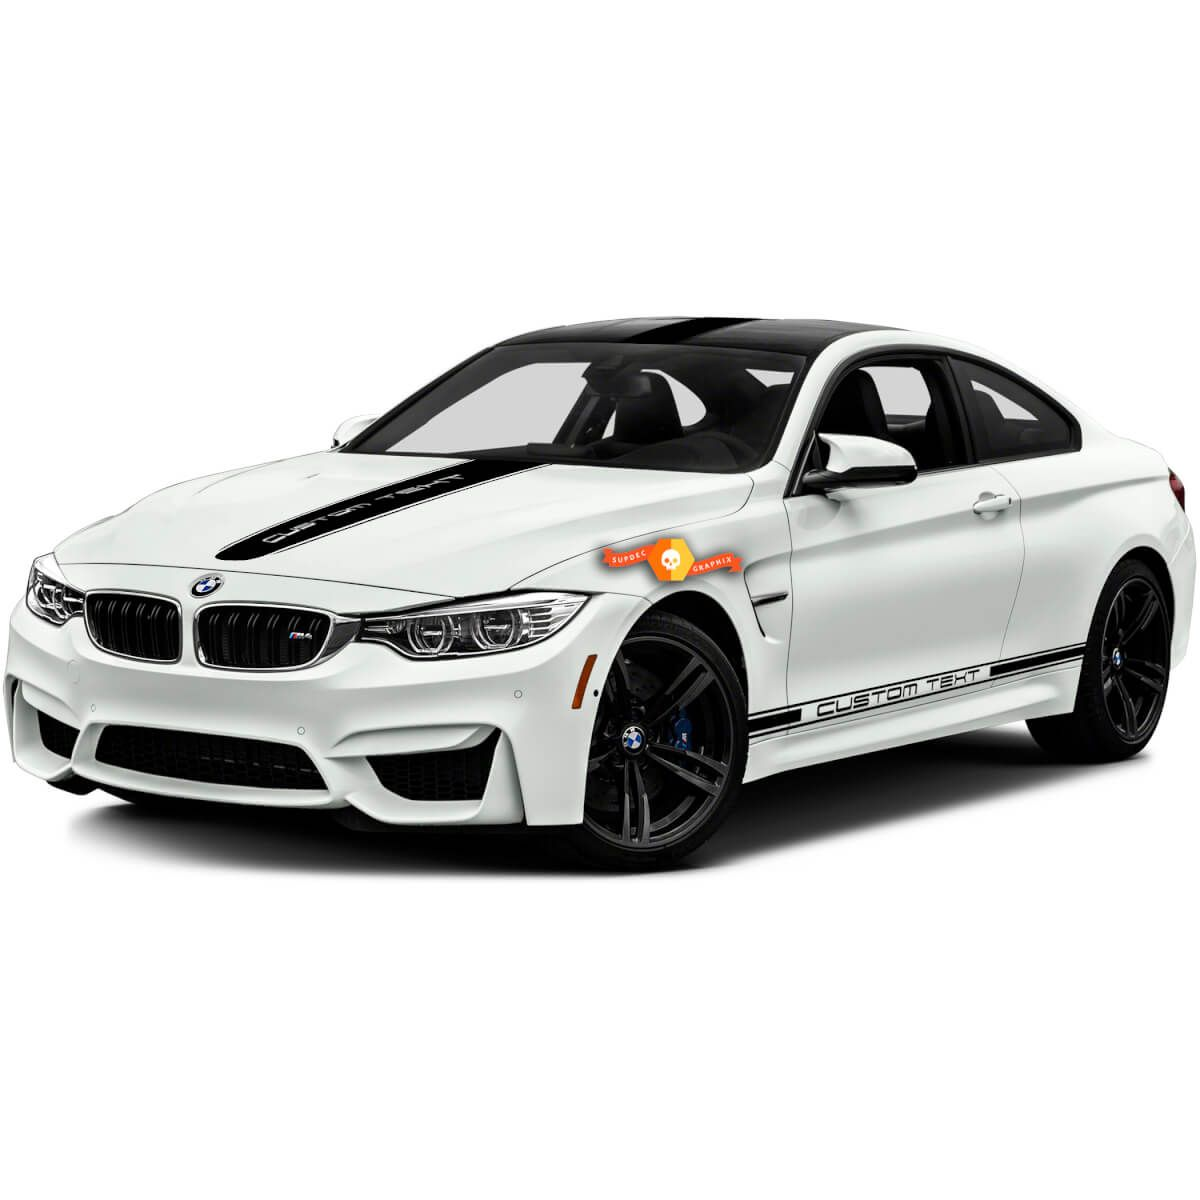 Bmw M Bmw M3 M4 One Color Racing Stripes And Hood Top Sides Vinyl Decals Stickers Racing Stripes Bmw Bmw M3 [ 1200 x 1200 Pixel ]